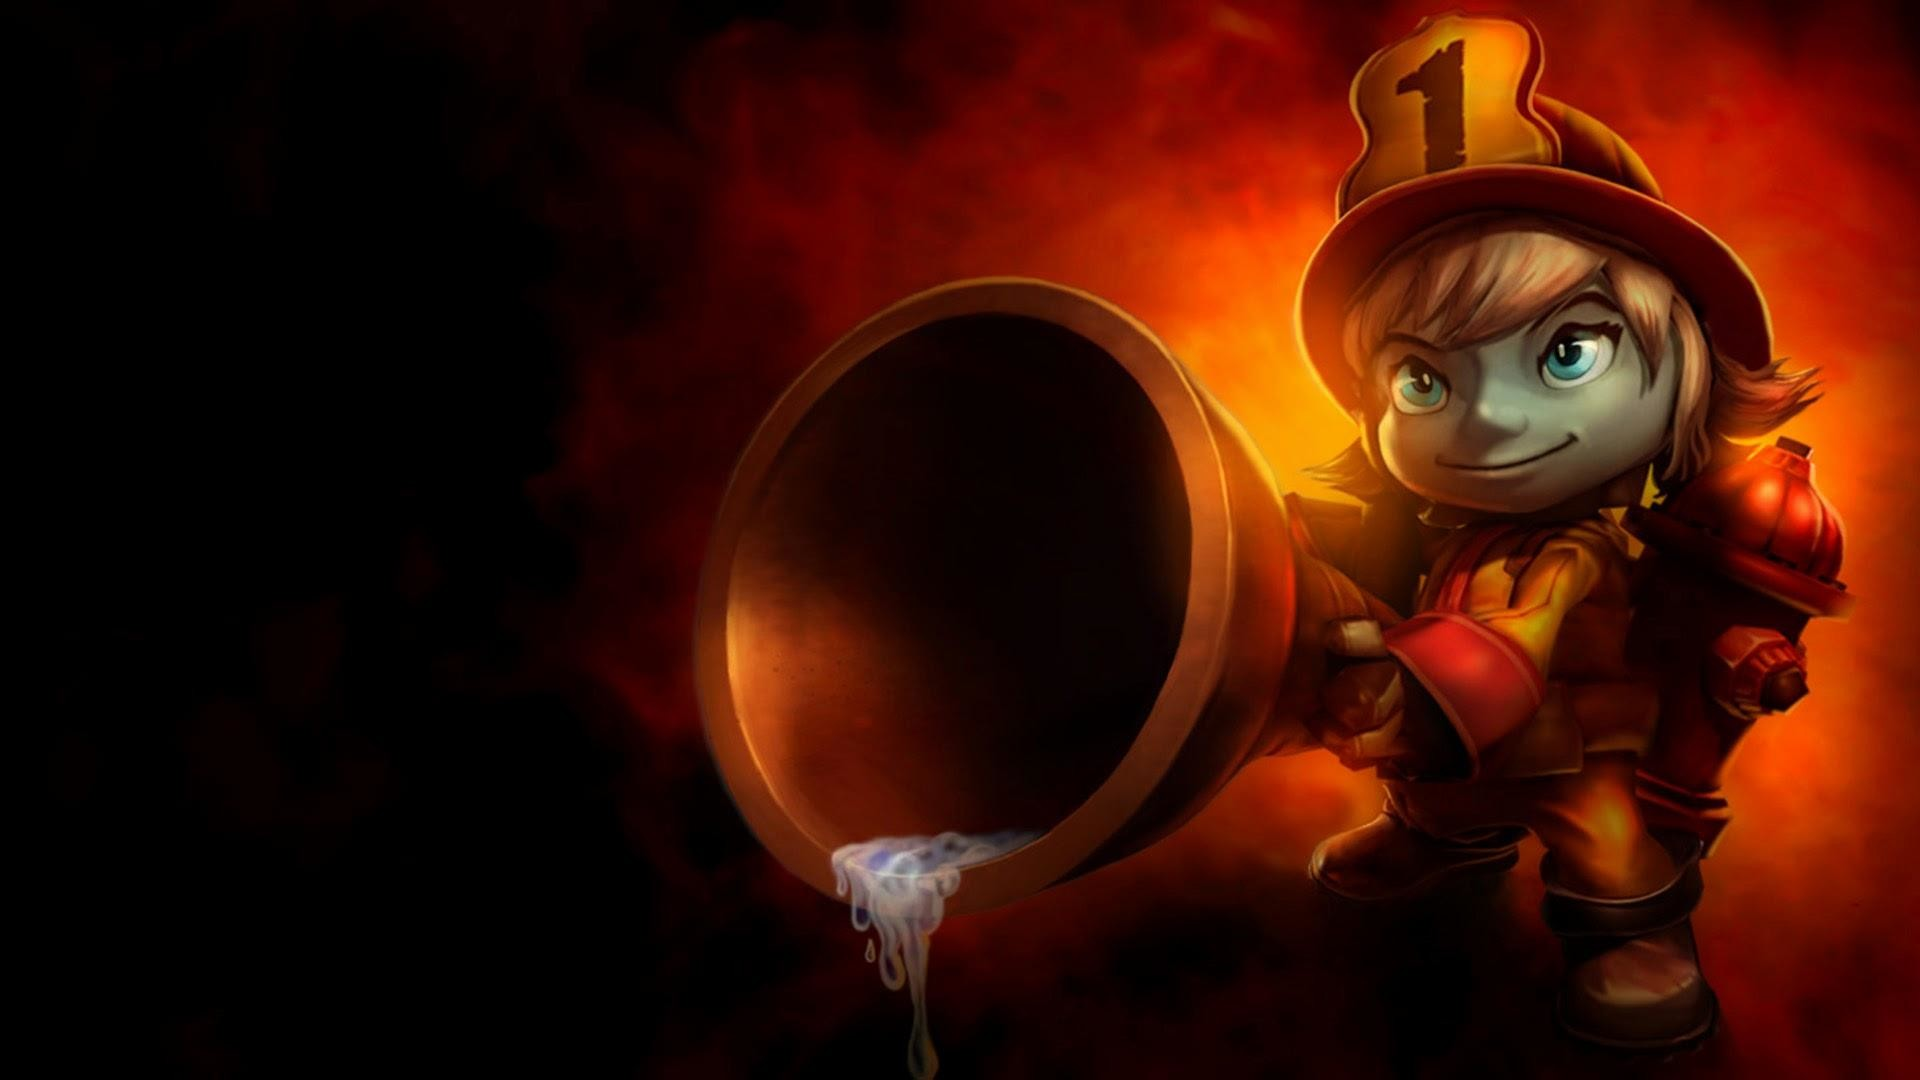 1920x1080 wallpaper.wiki-Cartoon-firefighter-wallpaper-for-desktop-PIC-